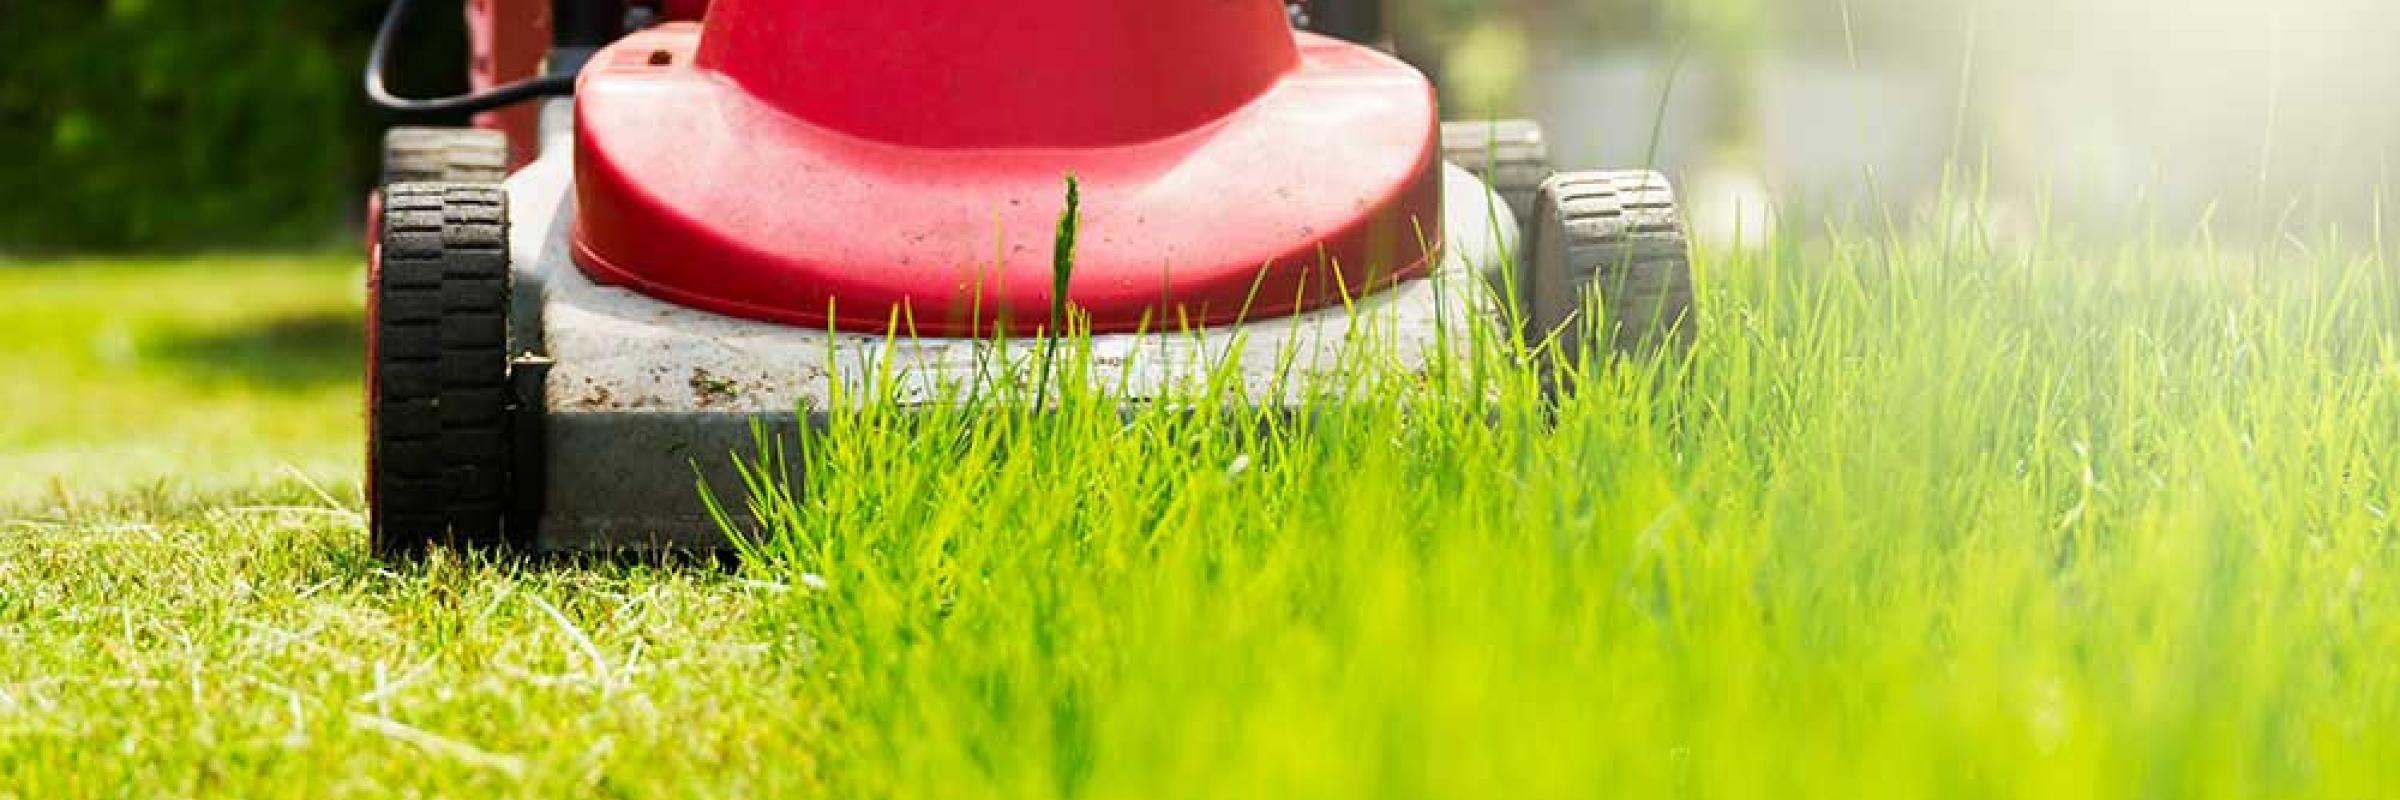 Florida Lawncare & Sprinklers